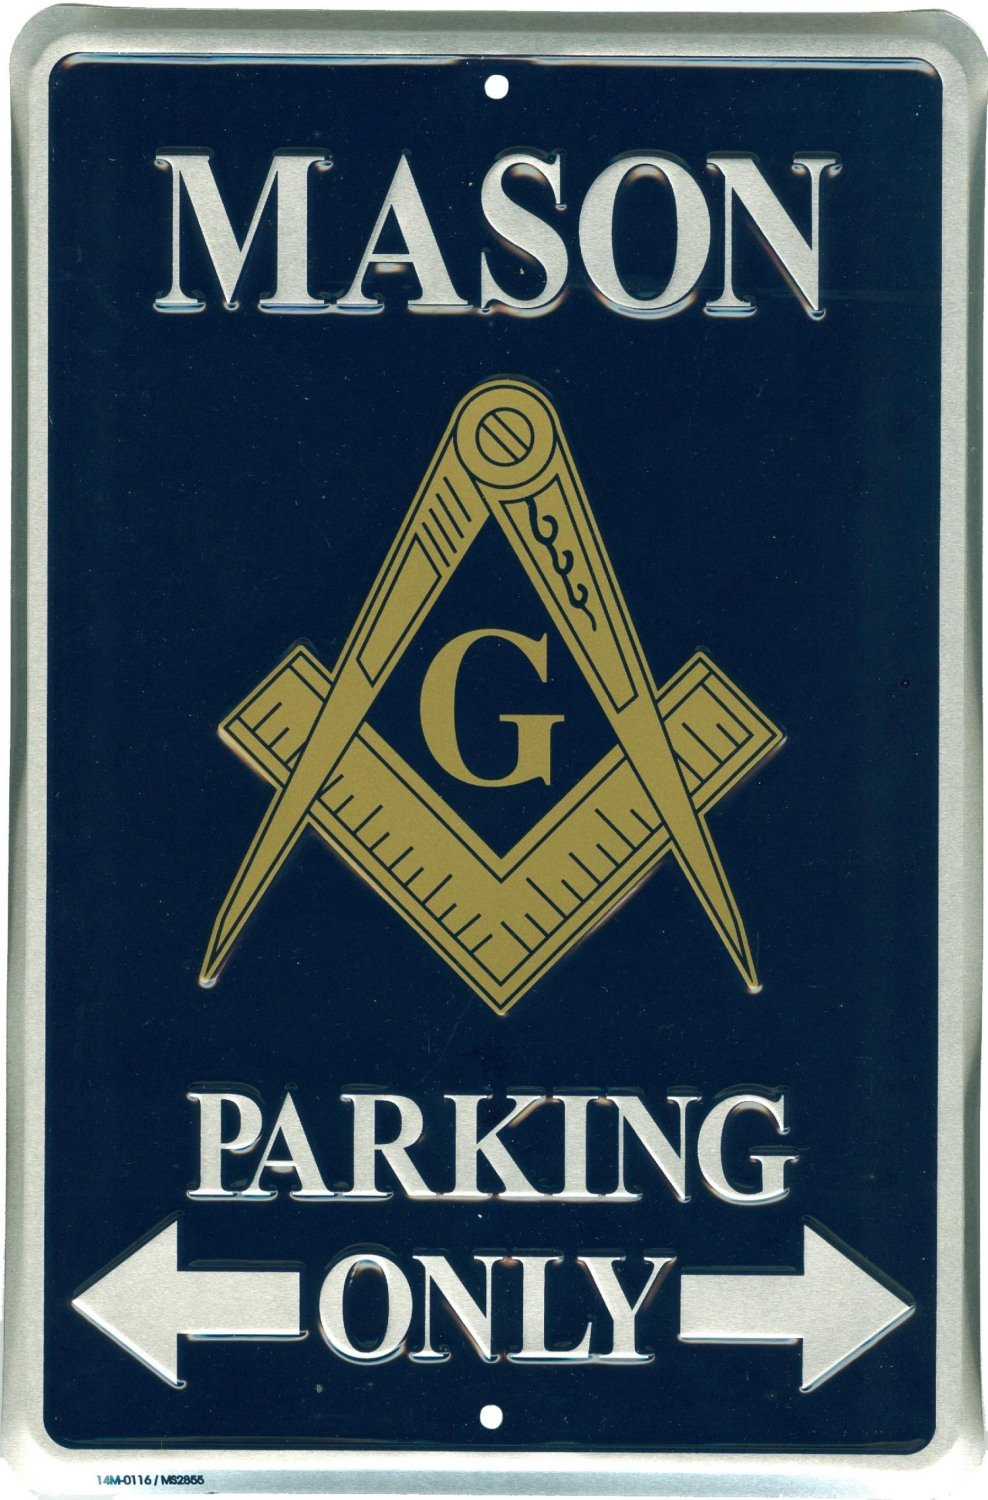 Mason Parking Only Novelty Metal Sign for Garage Bar Office Porch Lawn